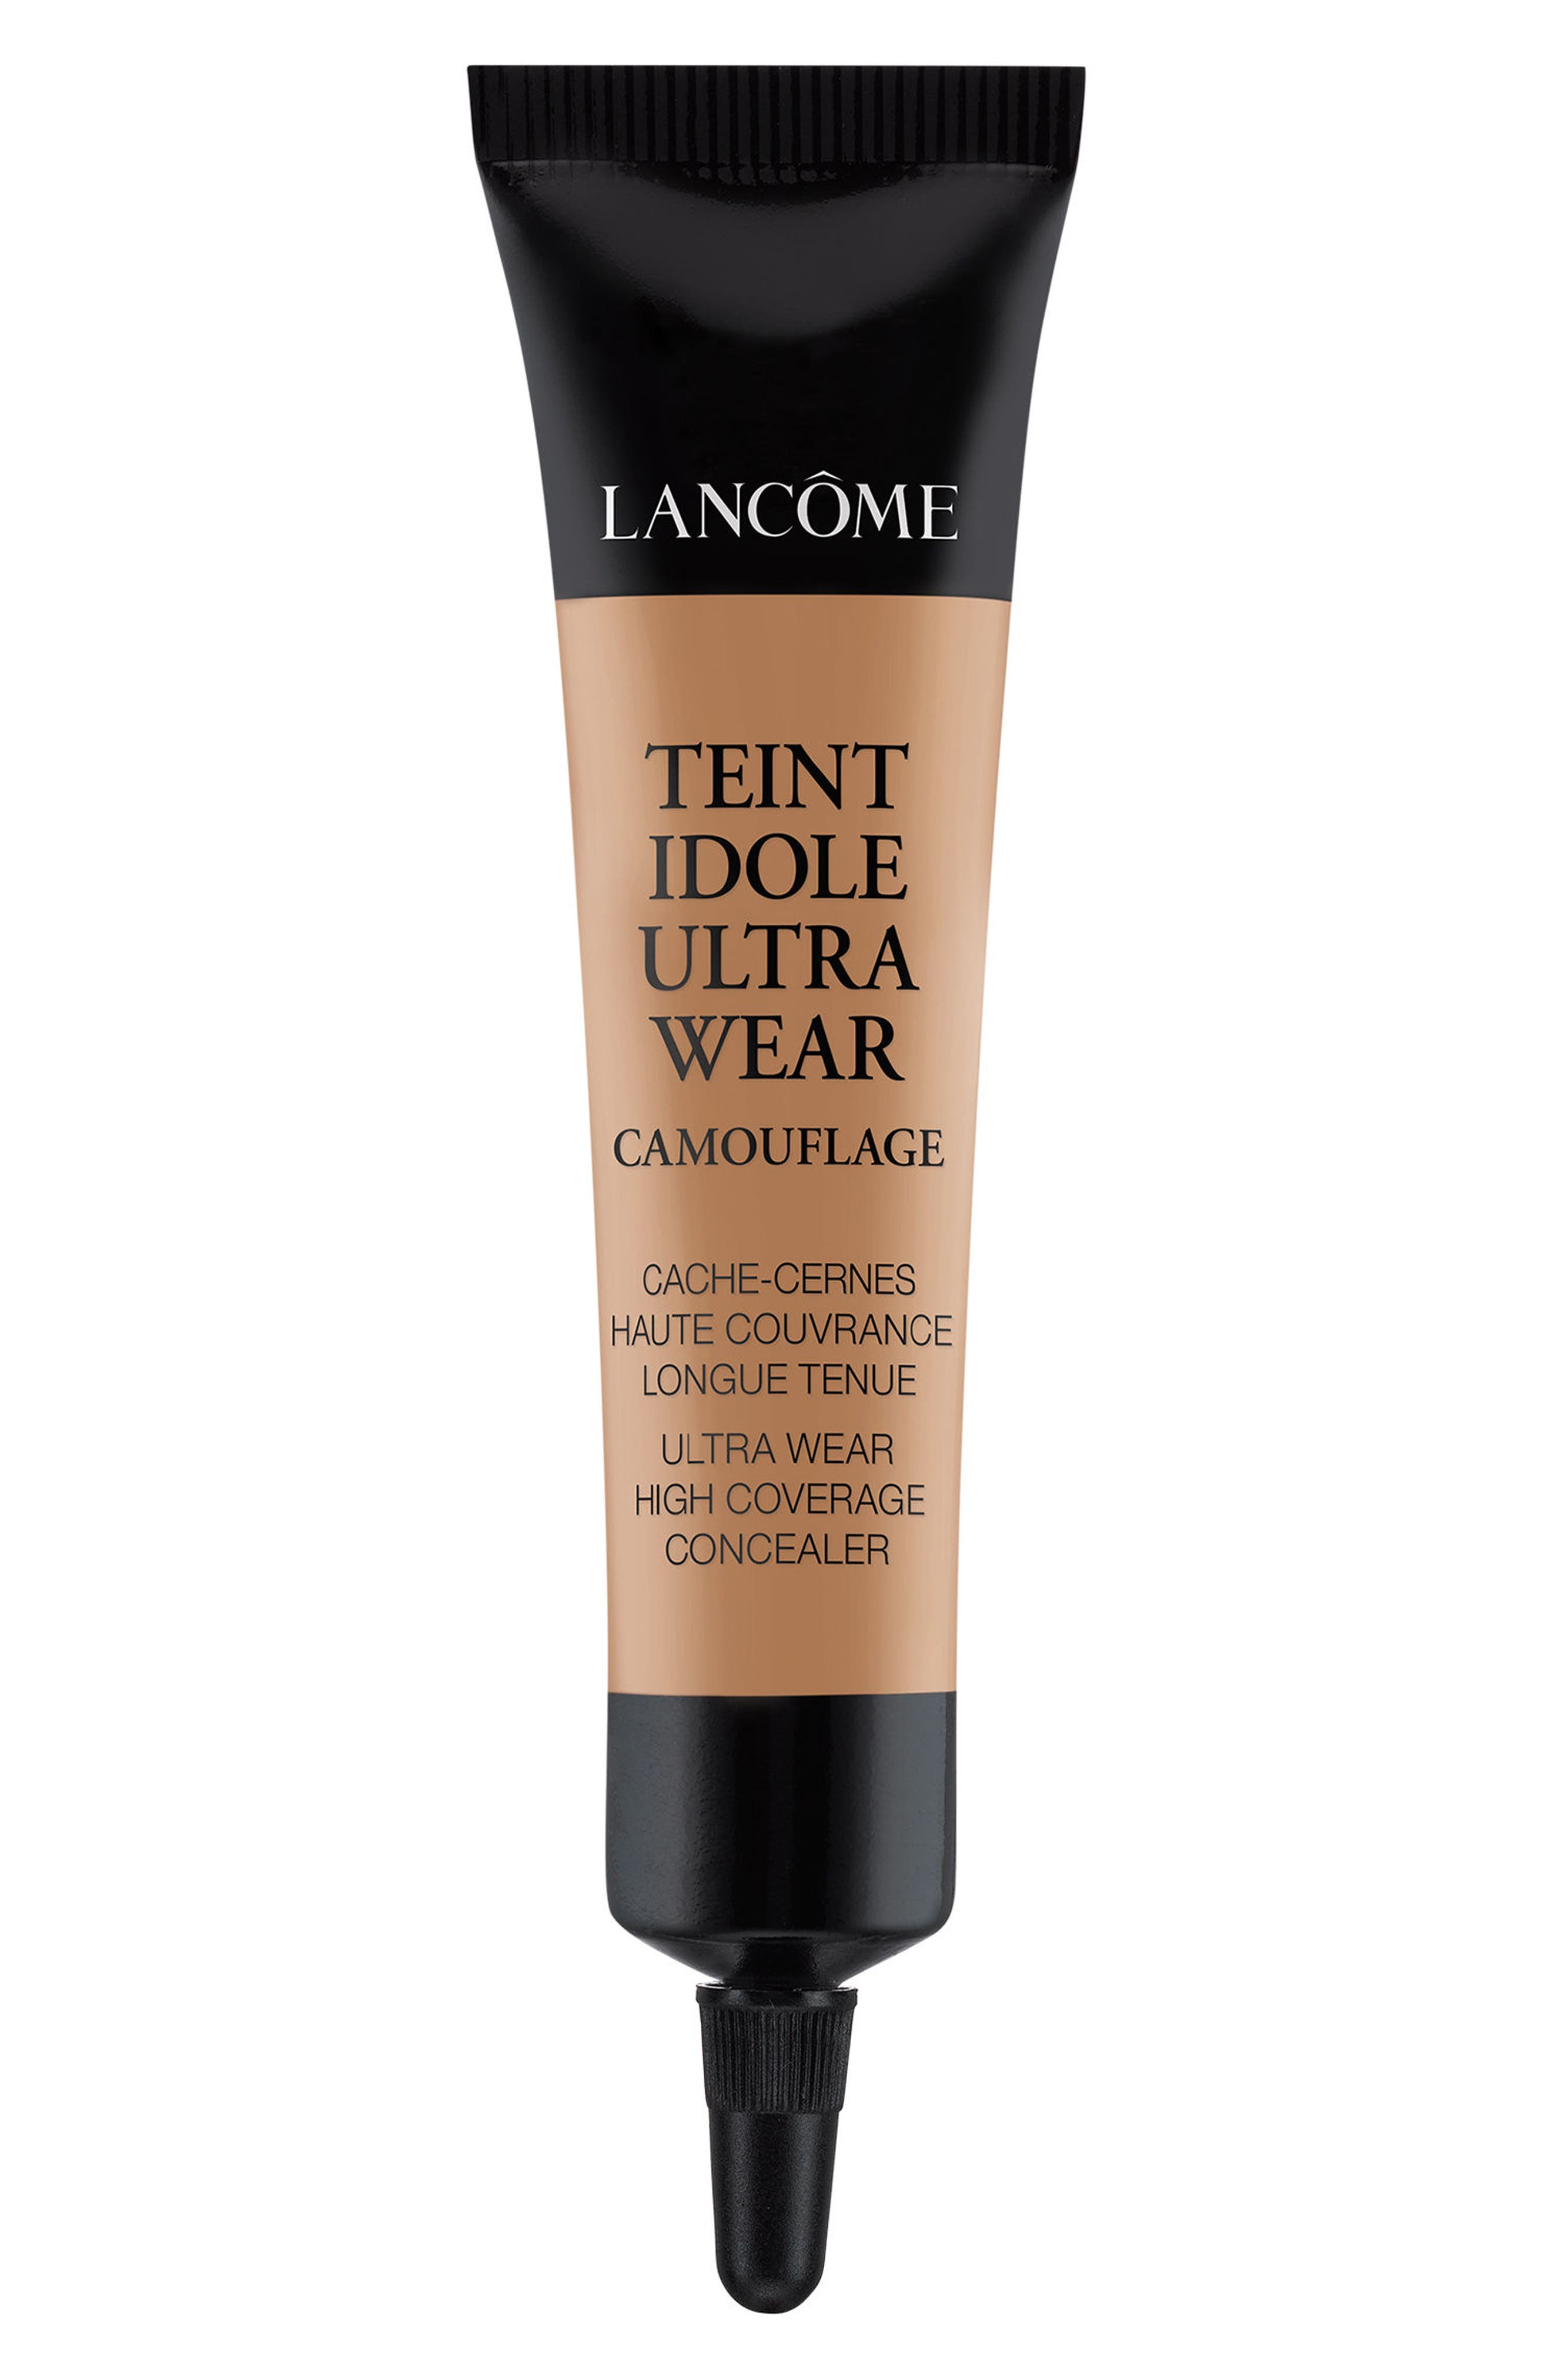 Teint Idole Ultra Wear Camouflage Concealer,                         Main,                         color, 370 Bisque W